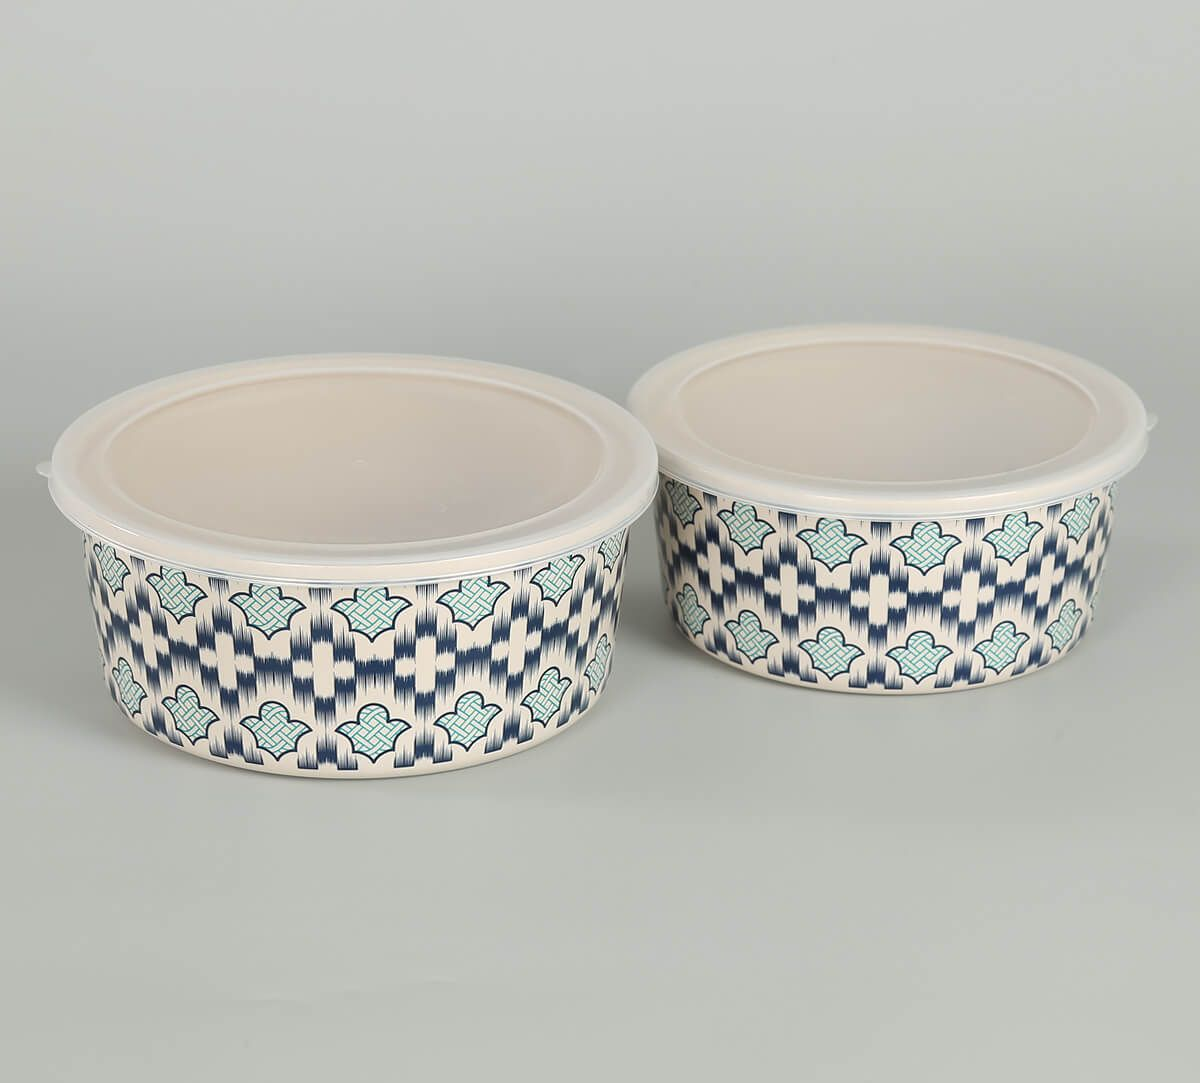 India Circus by Krsnaa Mehta Organised Ovule Big Container set of 2